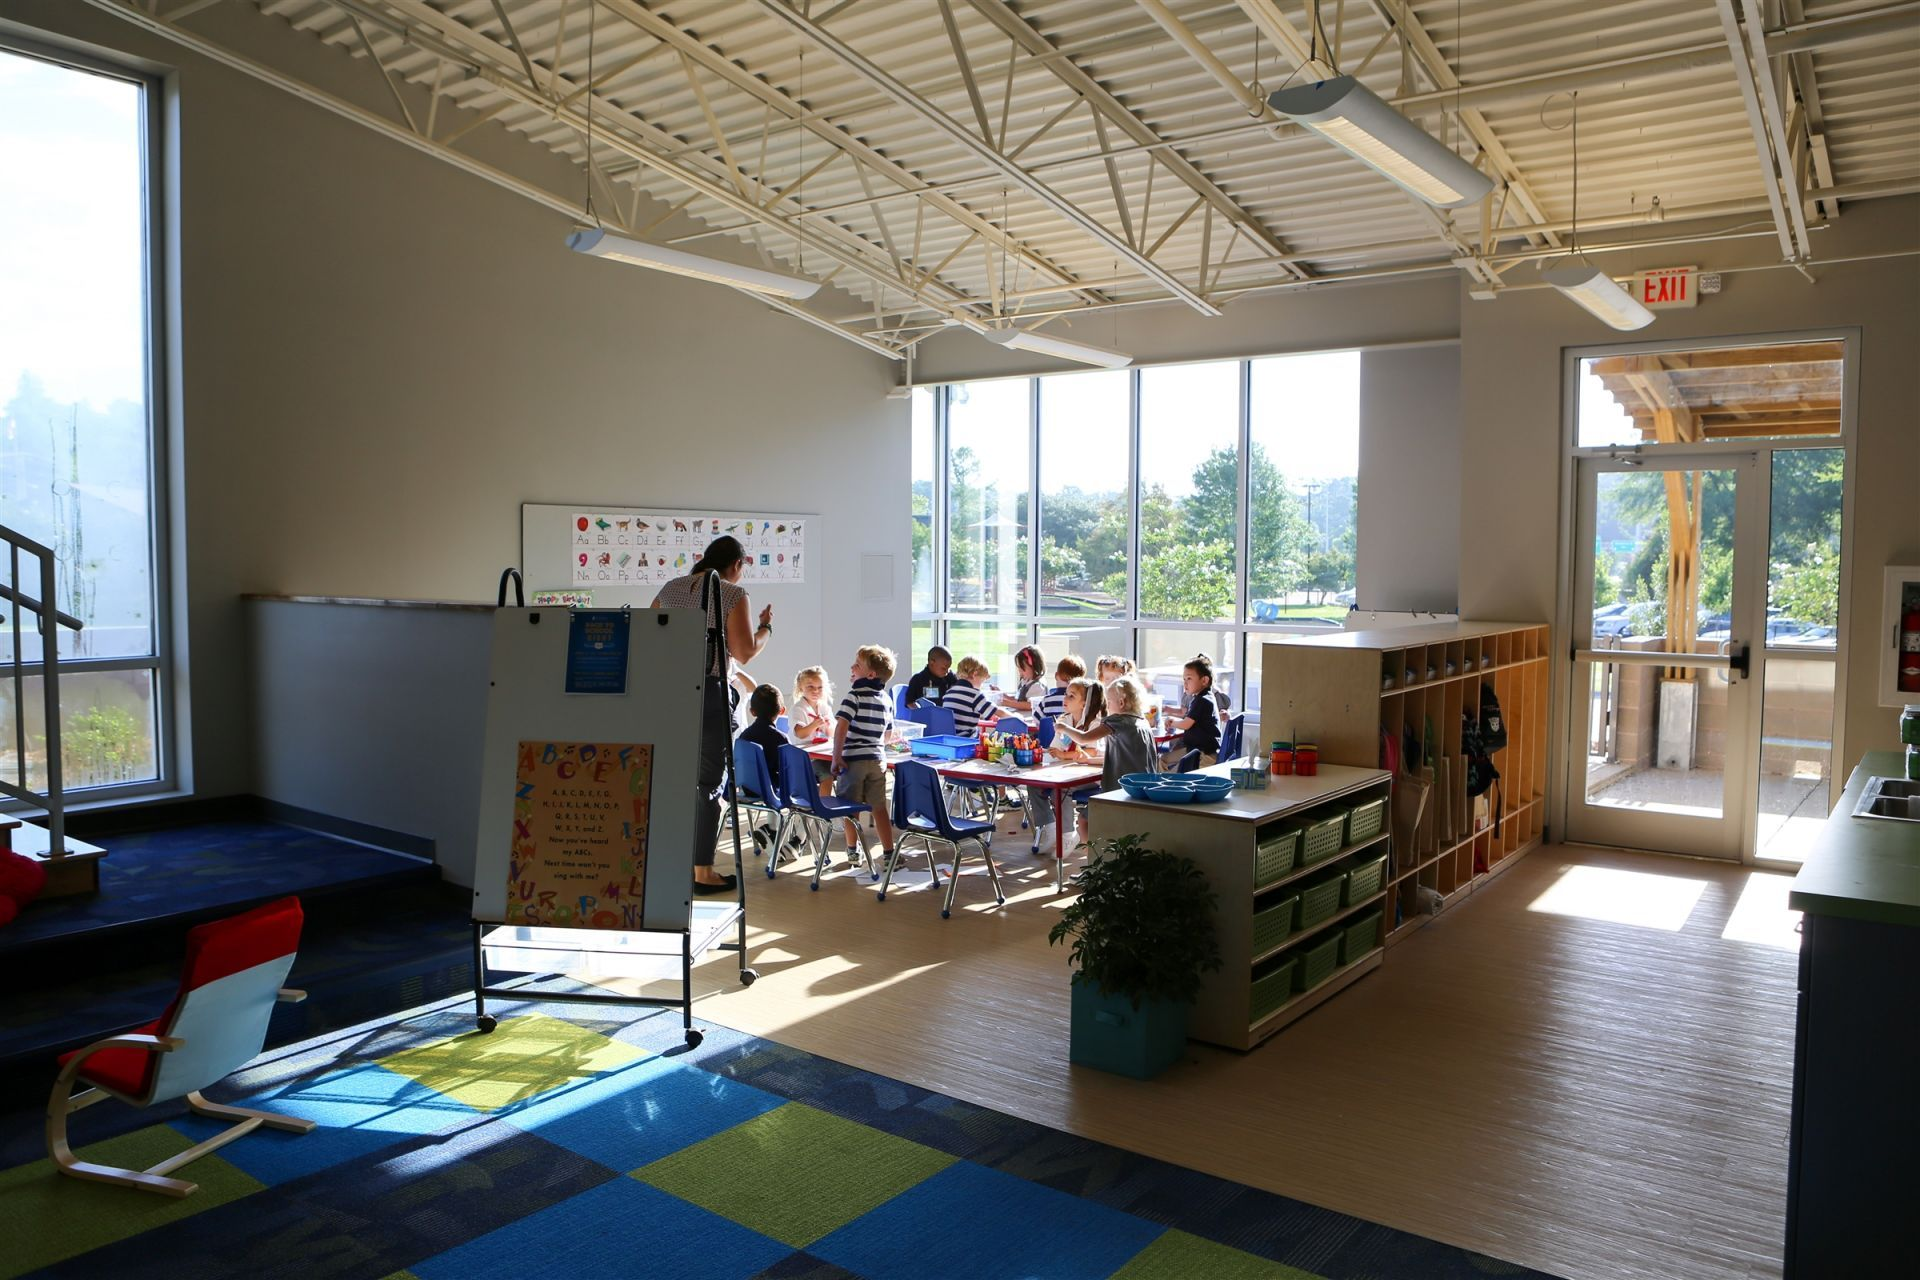 All the Early Childhood classrooms are filled with natural light.